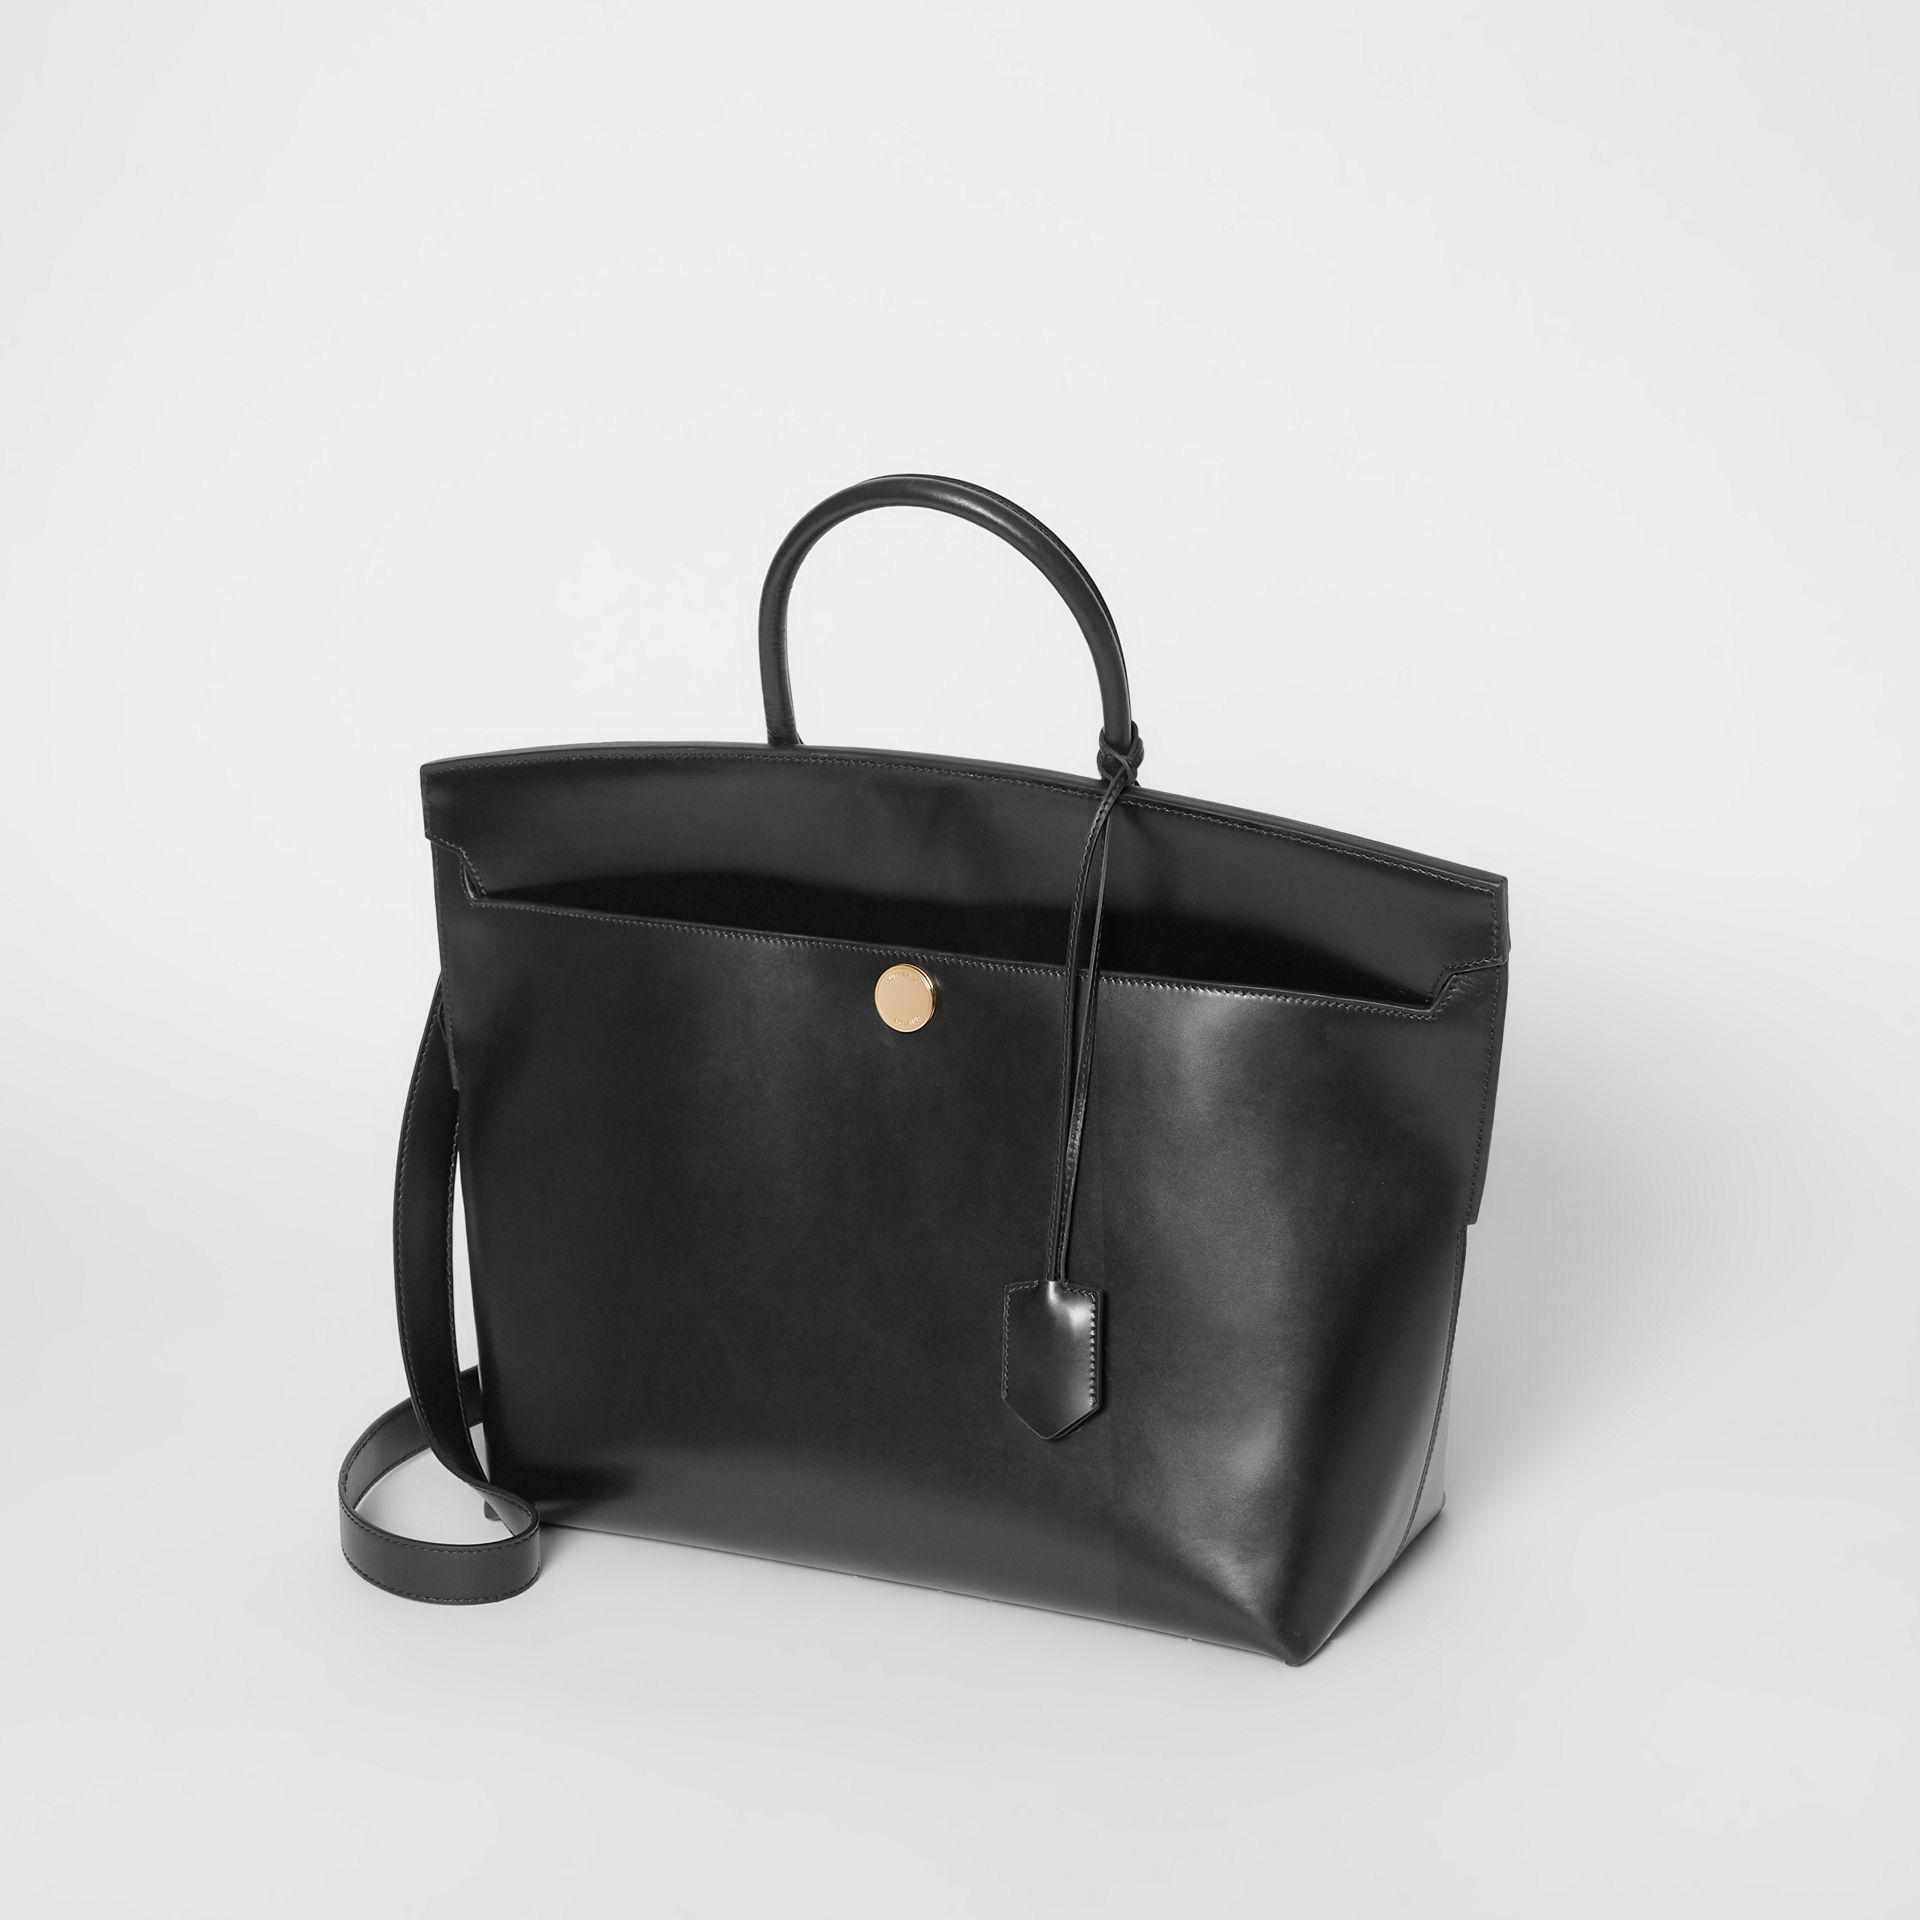 Leather Society Top Handle Bag in Black - Women | Burberry - gallery image 3